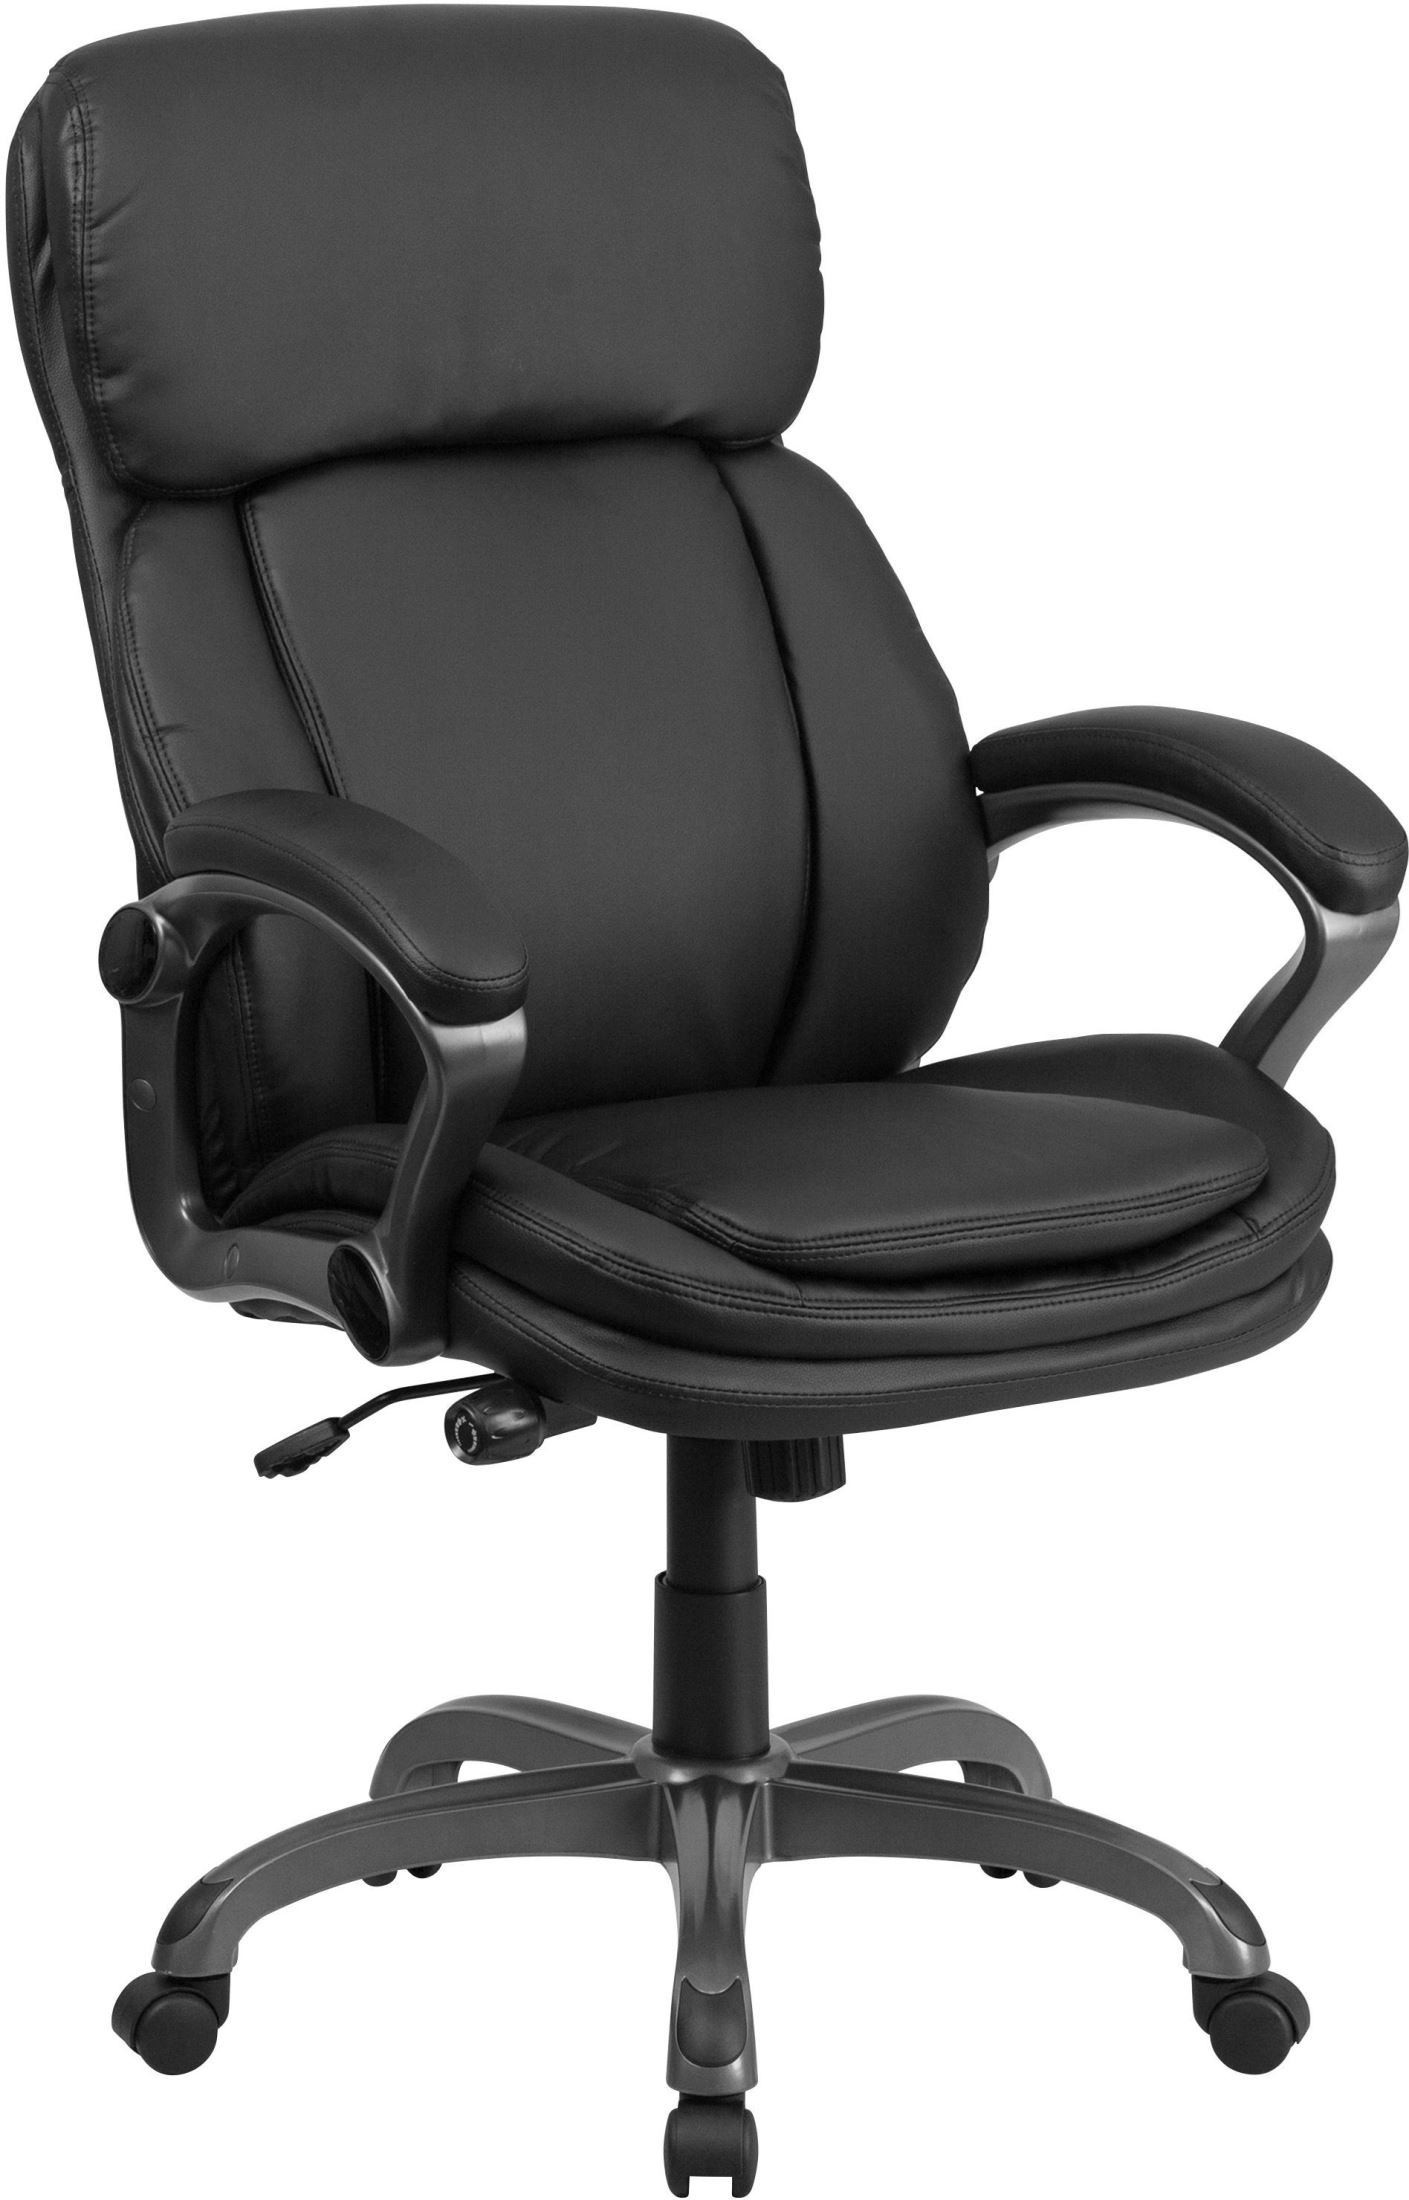 tall black executive swivel office chair with lumbar support knob bt 90272h gg renegade furniture. Black Bedroom Furniture Sets. Home Design Ideas